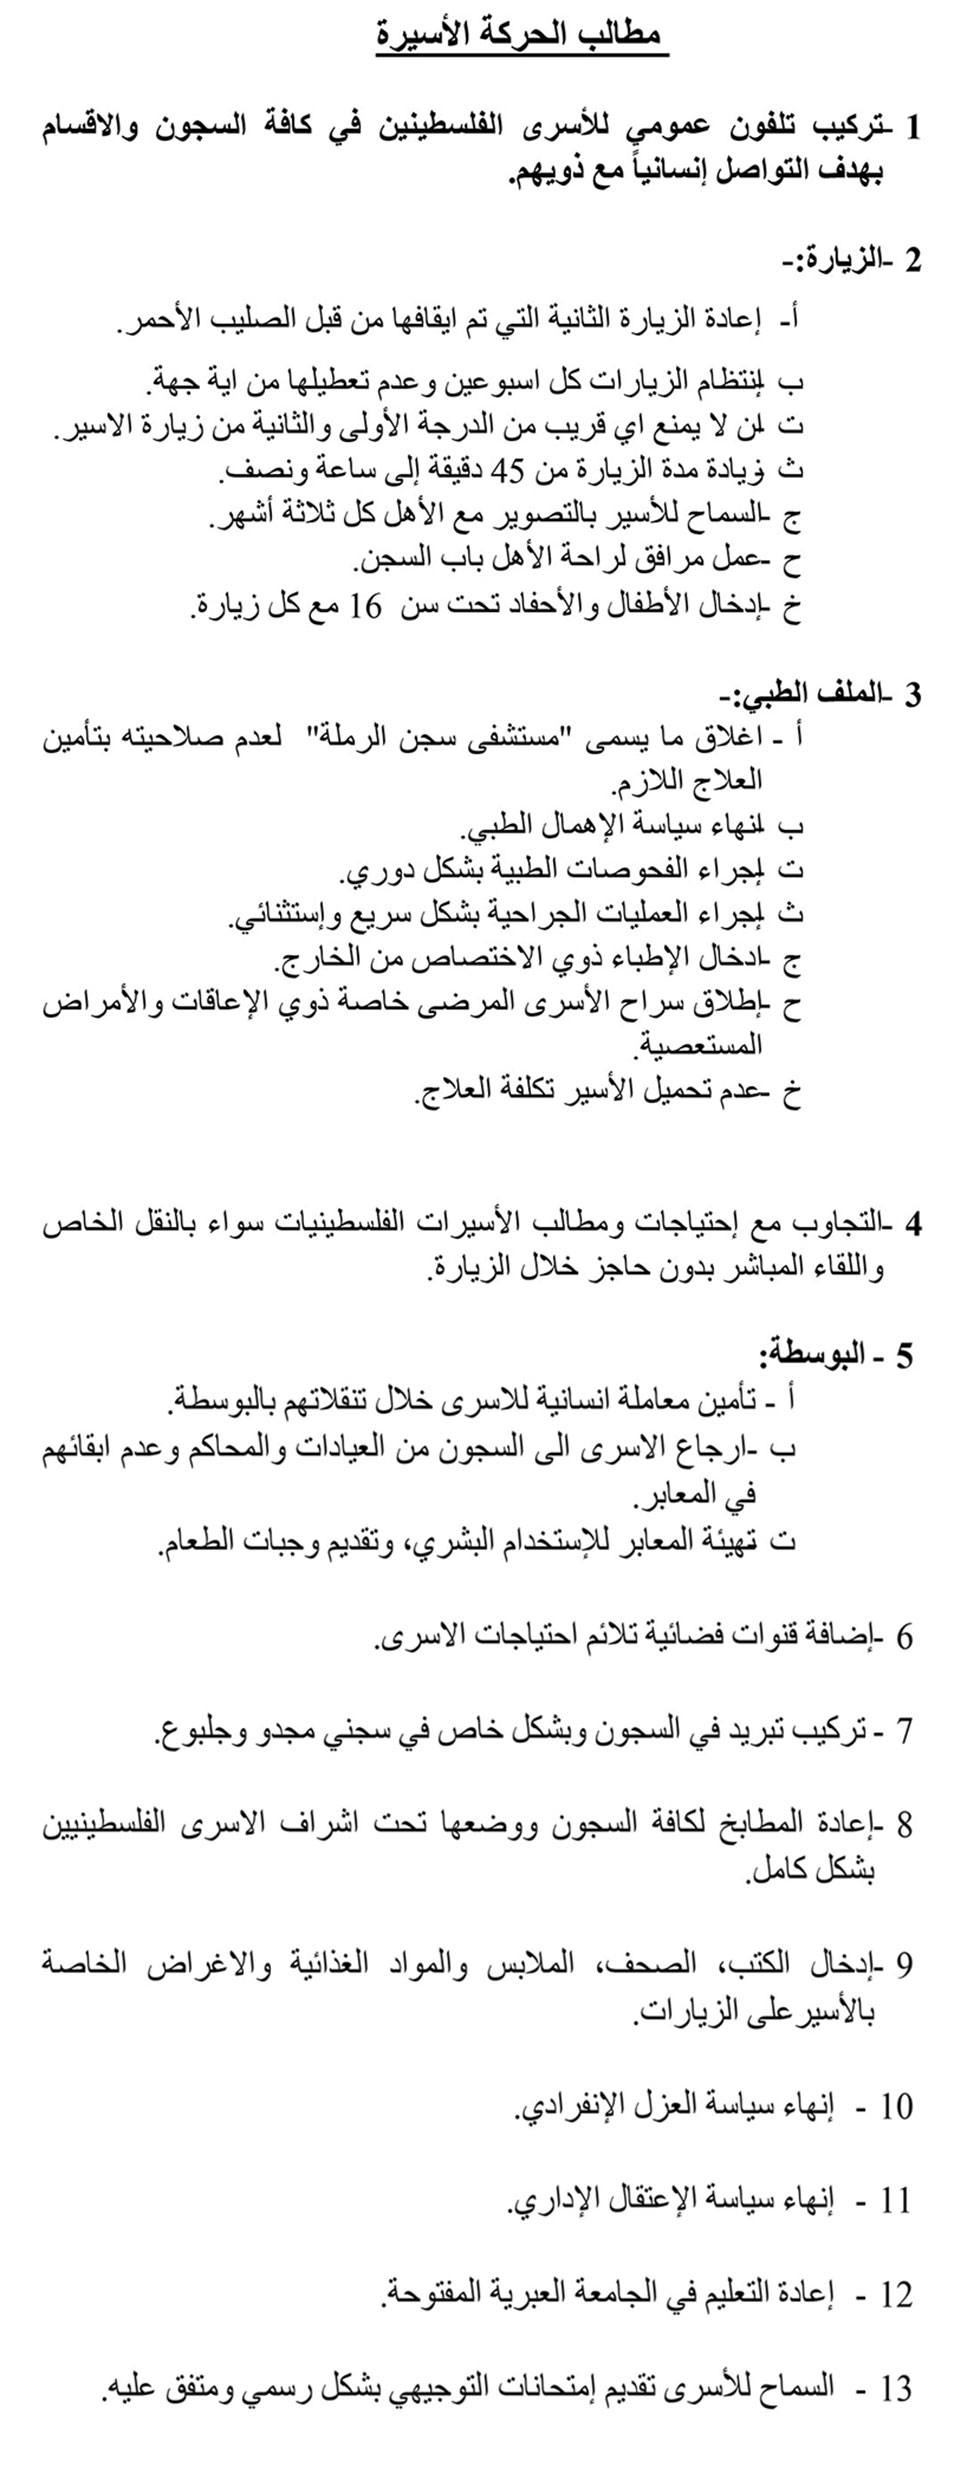 Copy of note submitted to IPS officials by Palestinian prisoners